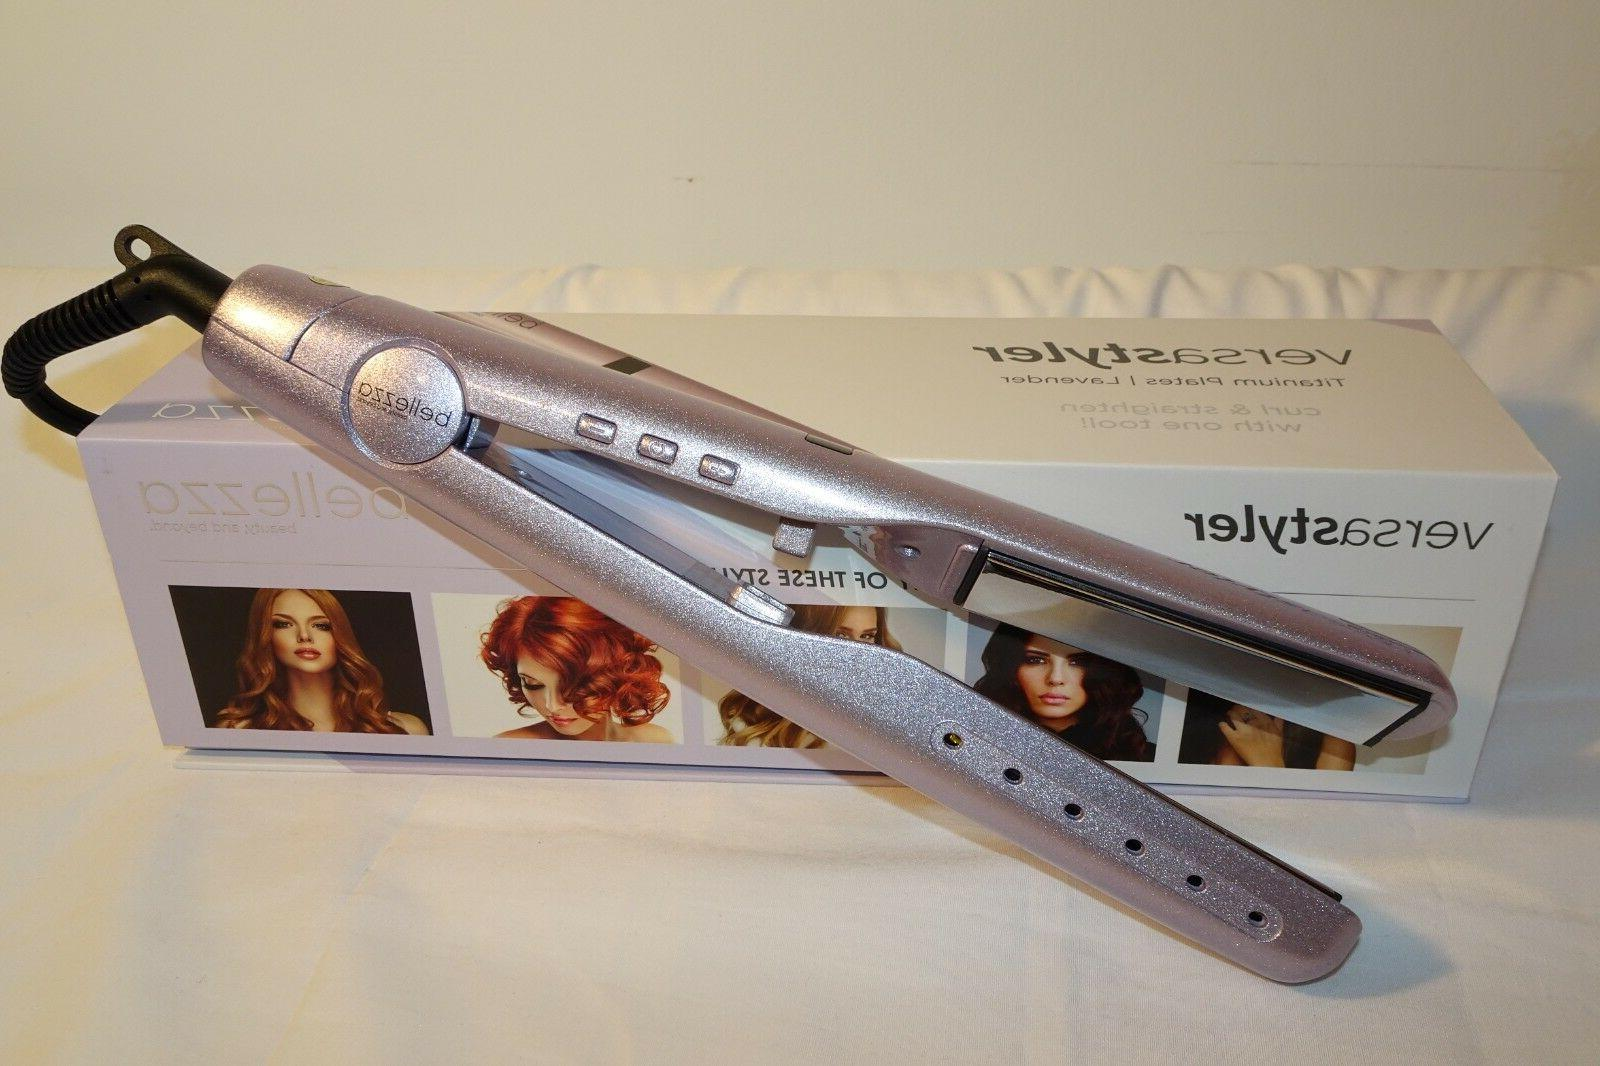 Original Bellezza versa styler  blush pink Iron Hair Straightener